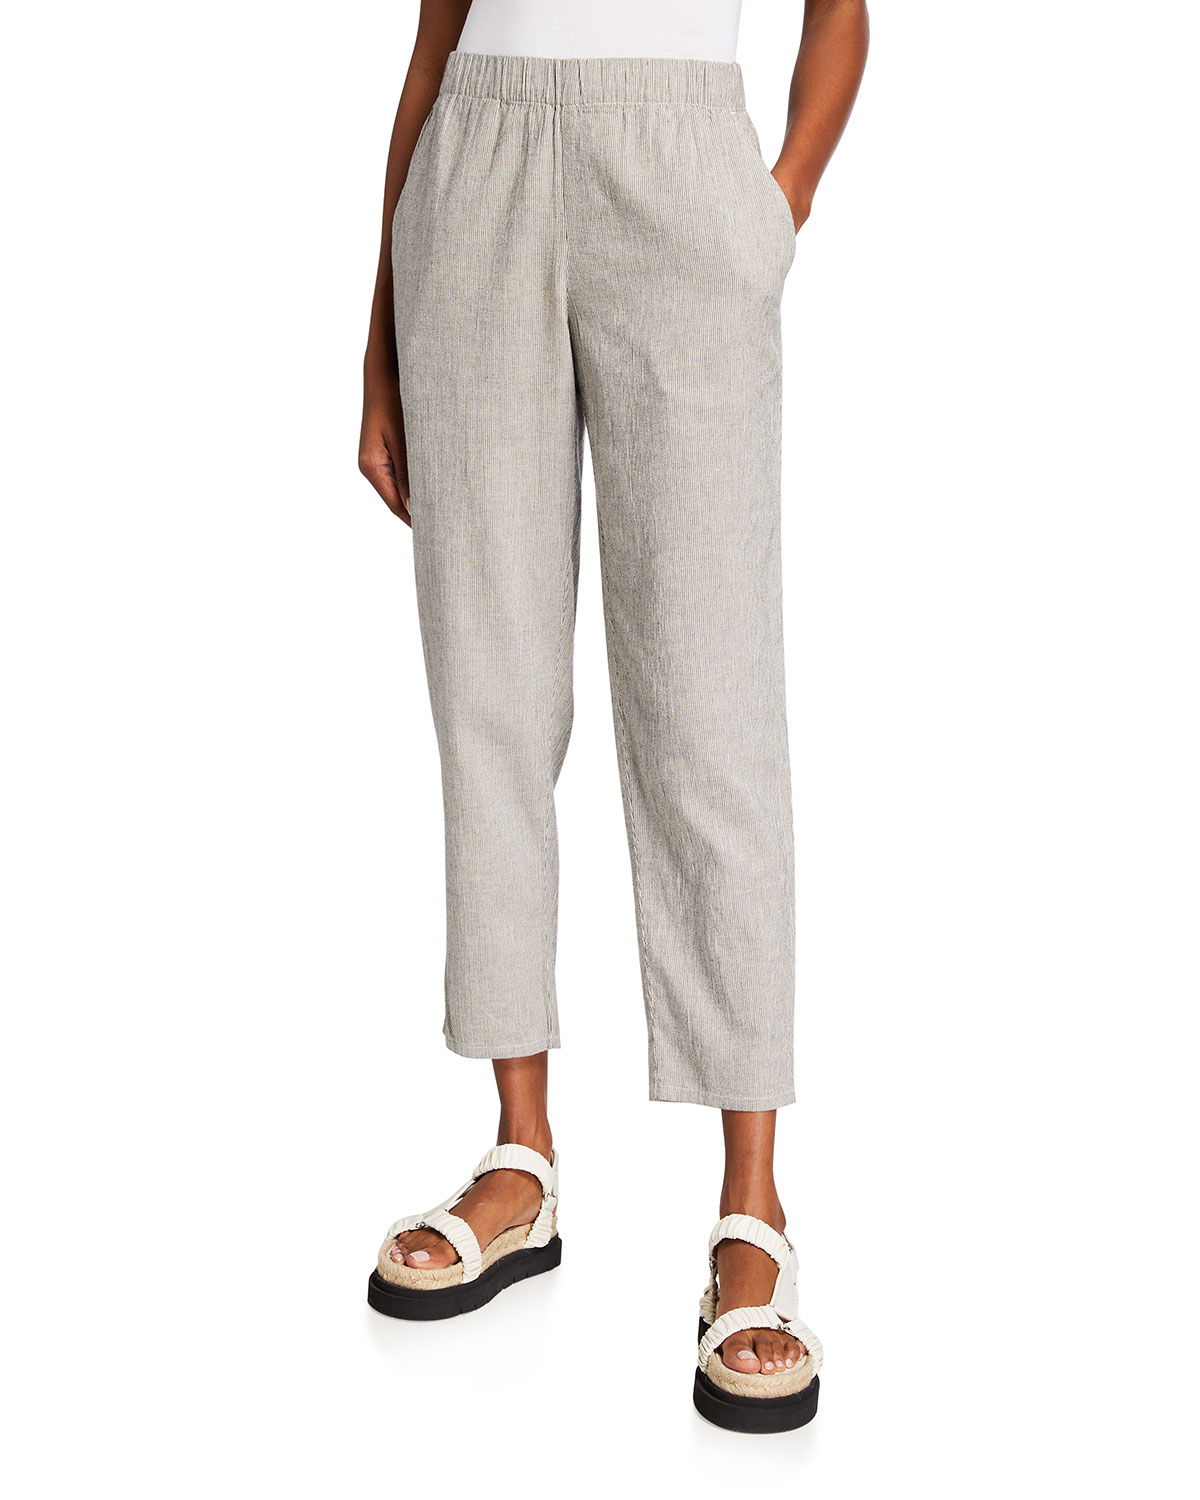 Eileen Fisher Pants TICKING STRIPE TAPERED ANKLE PANT